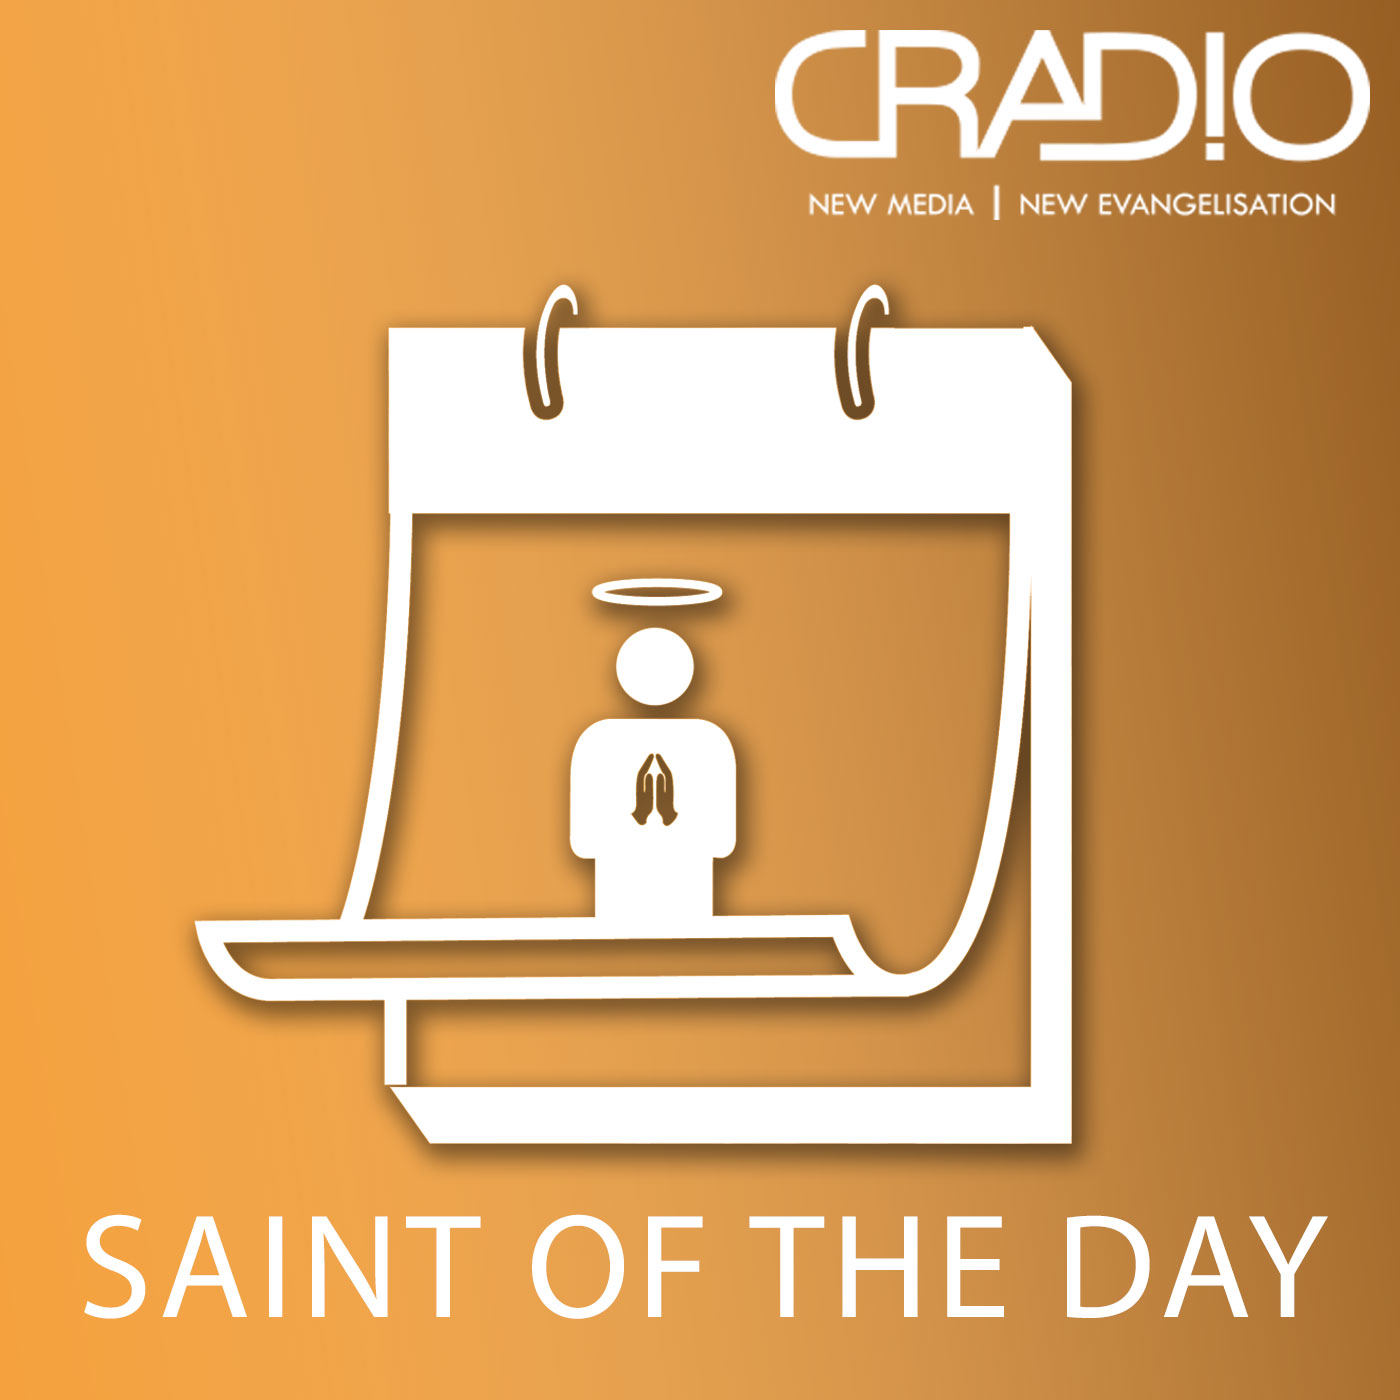 Saint of the Day – Cradio